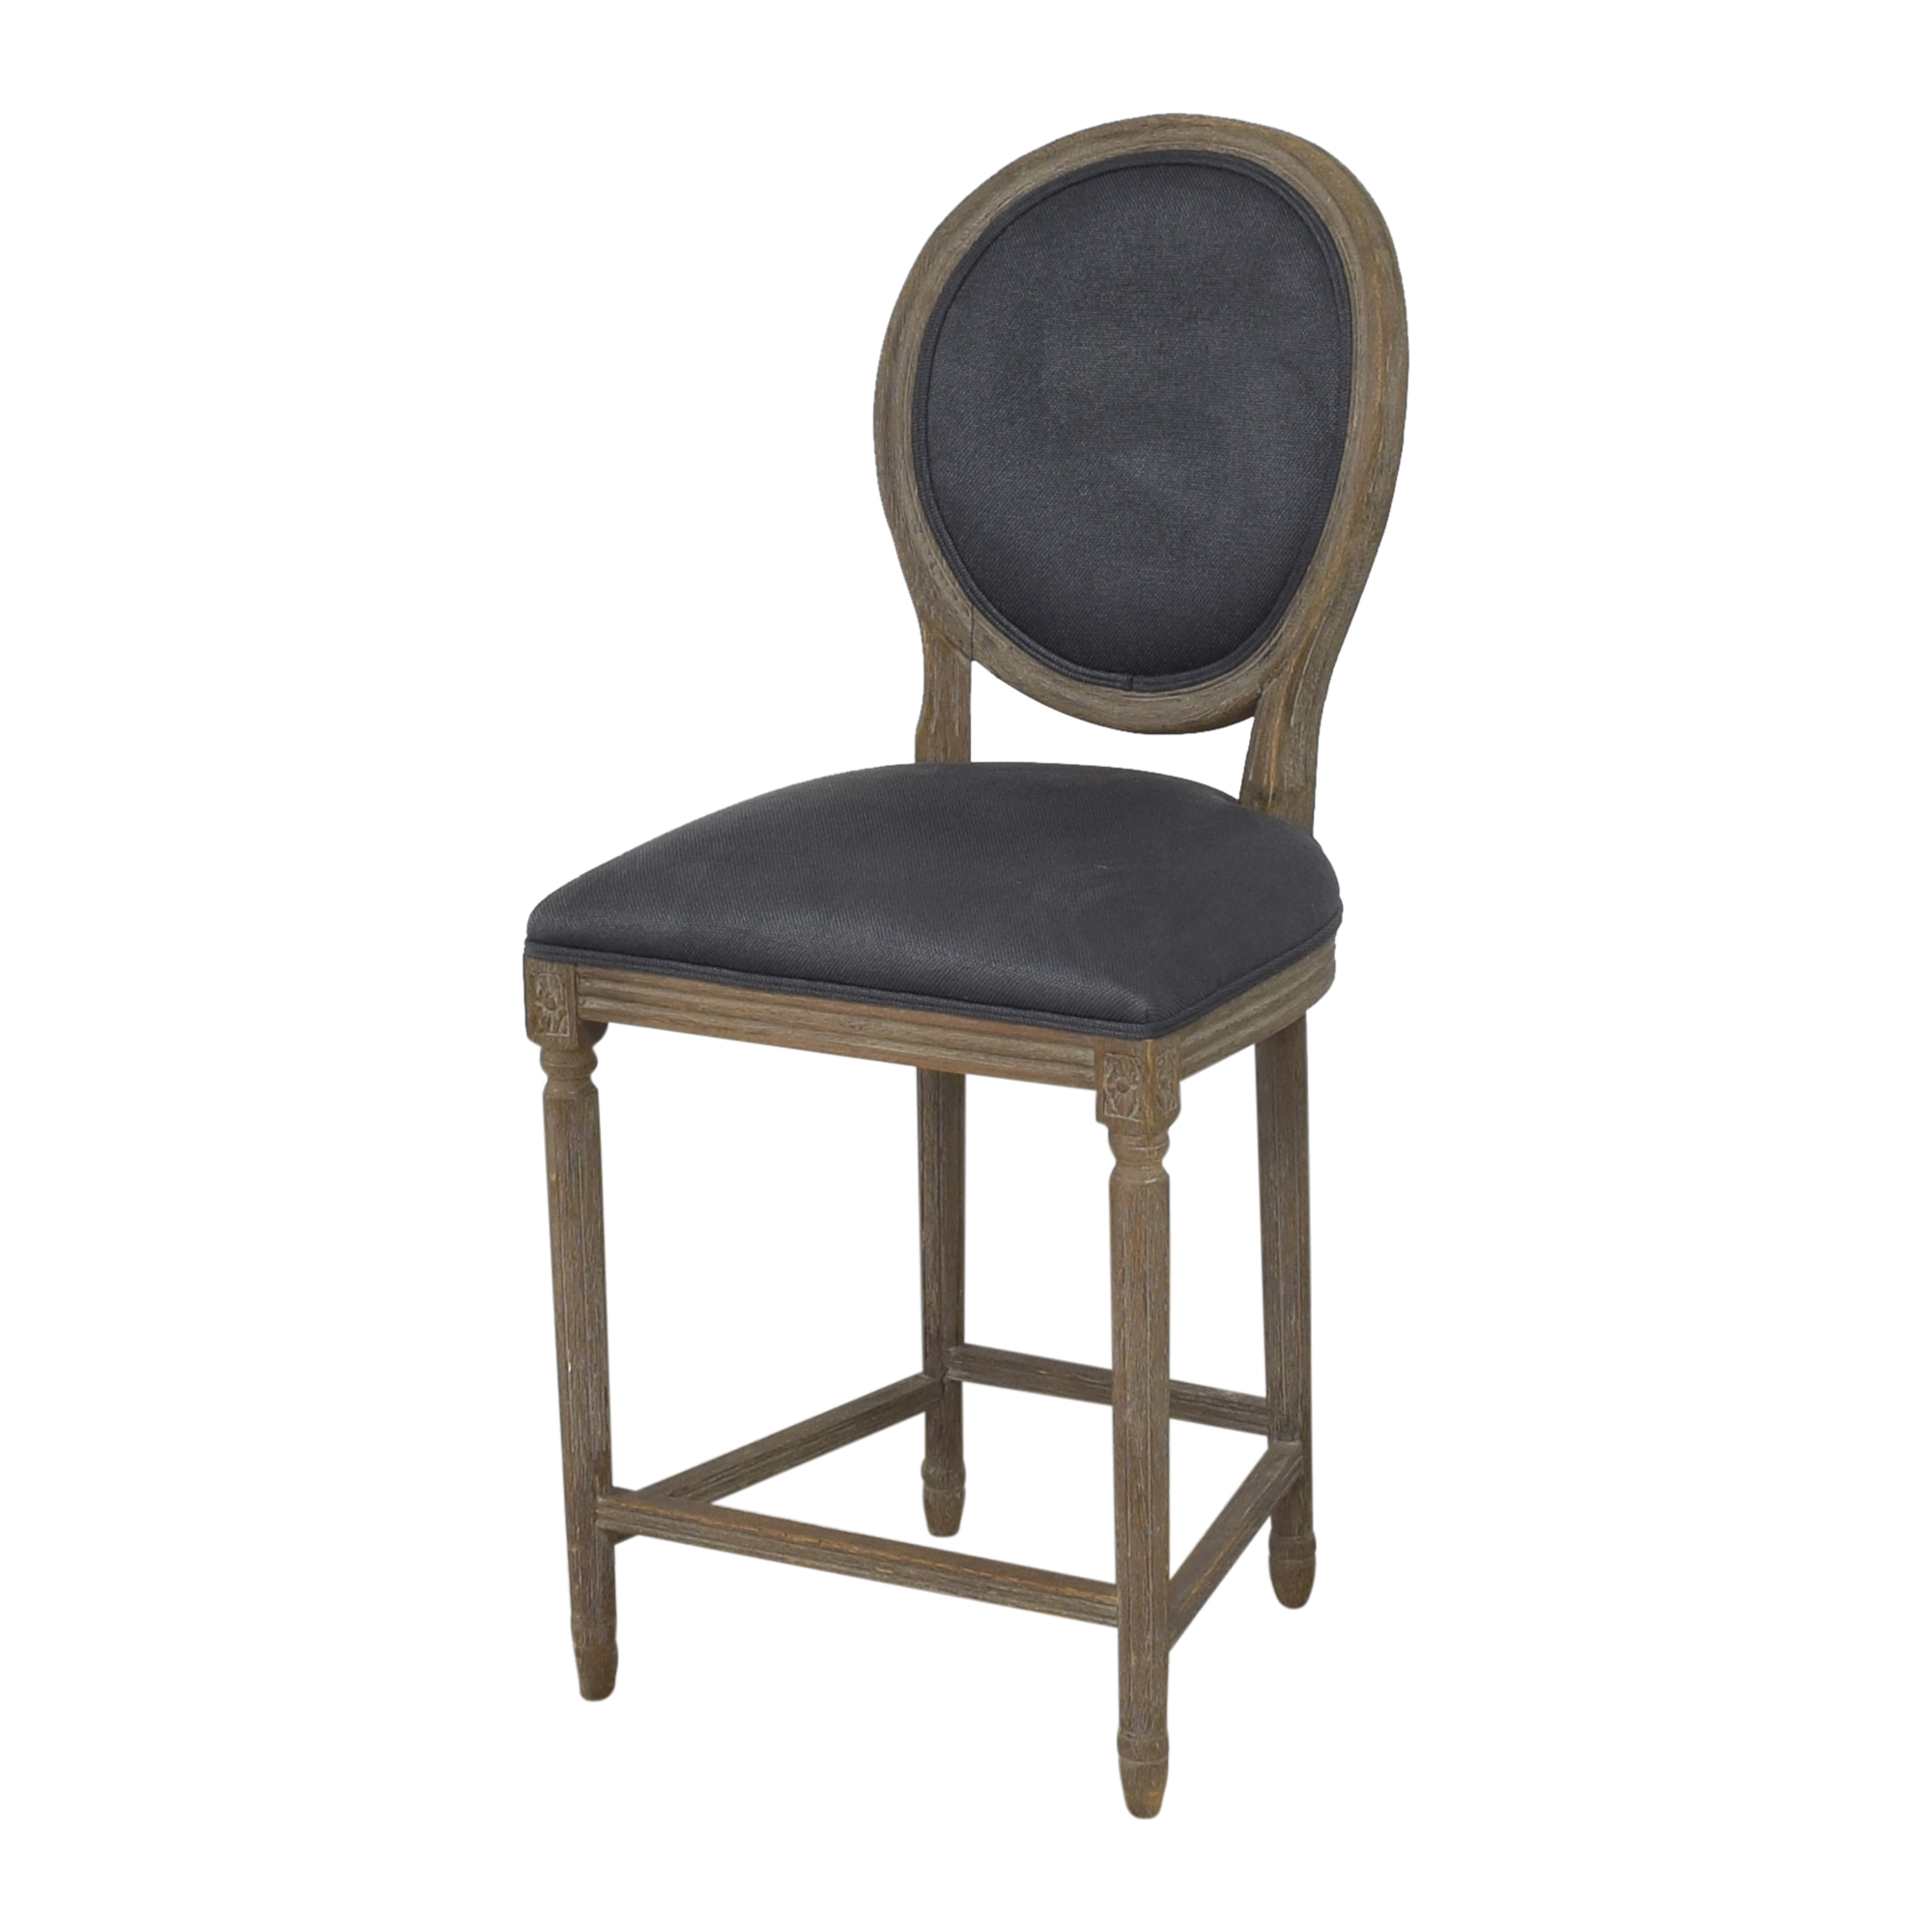 Restoration Hardware Restoration Hardware Vintage French Round Counter Stools nj